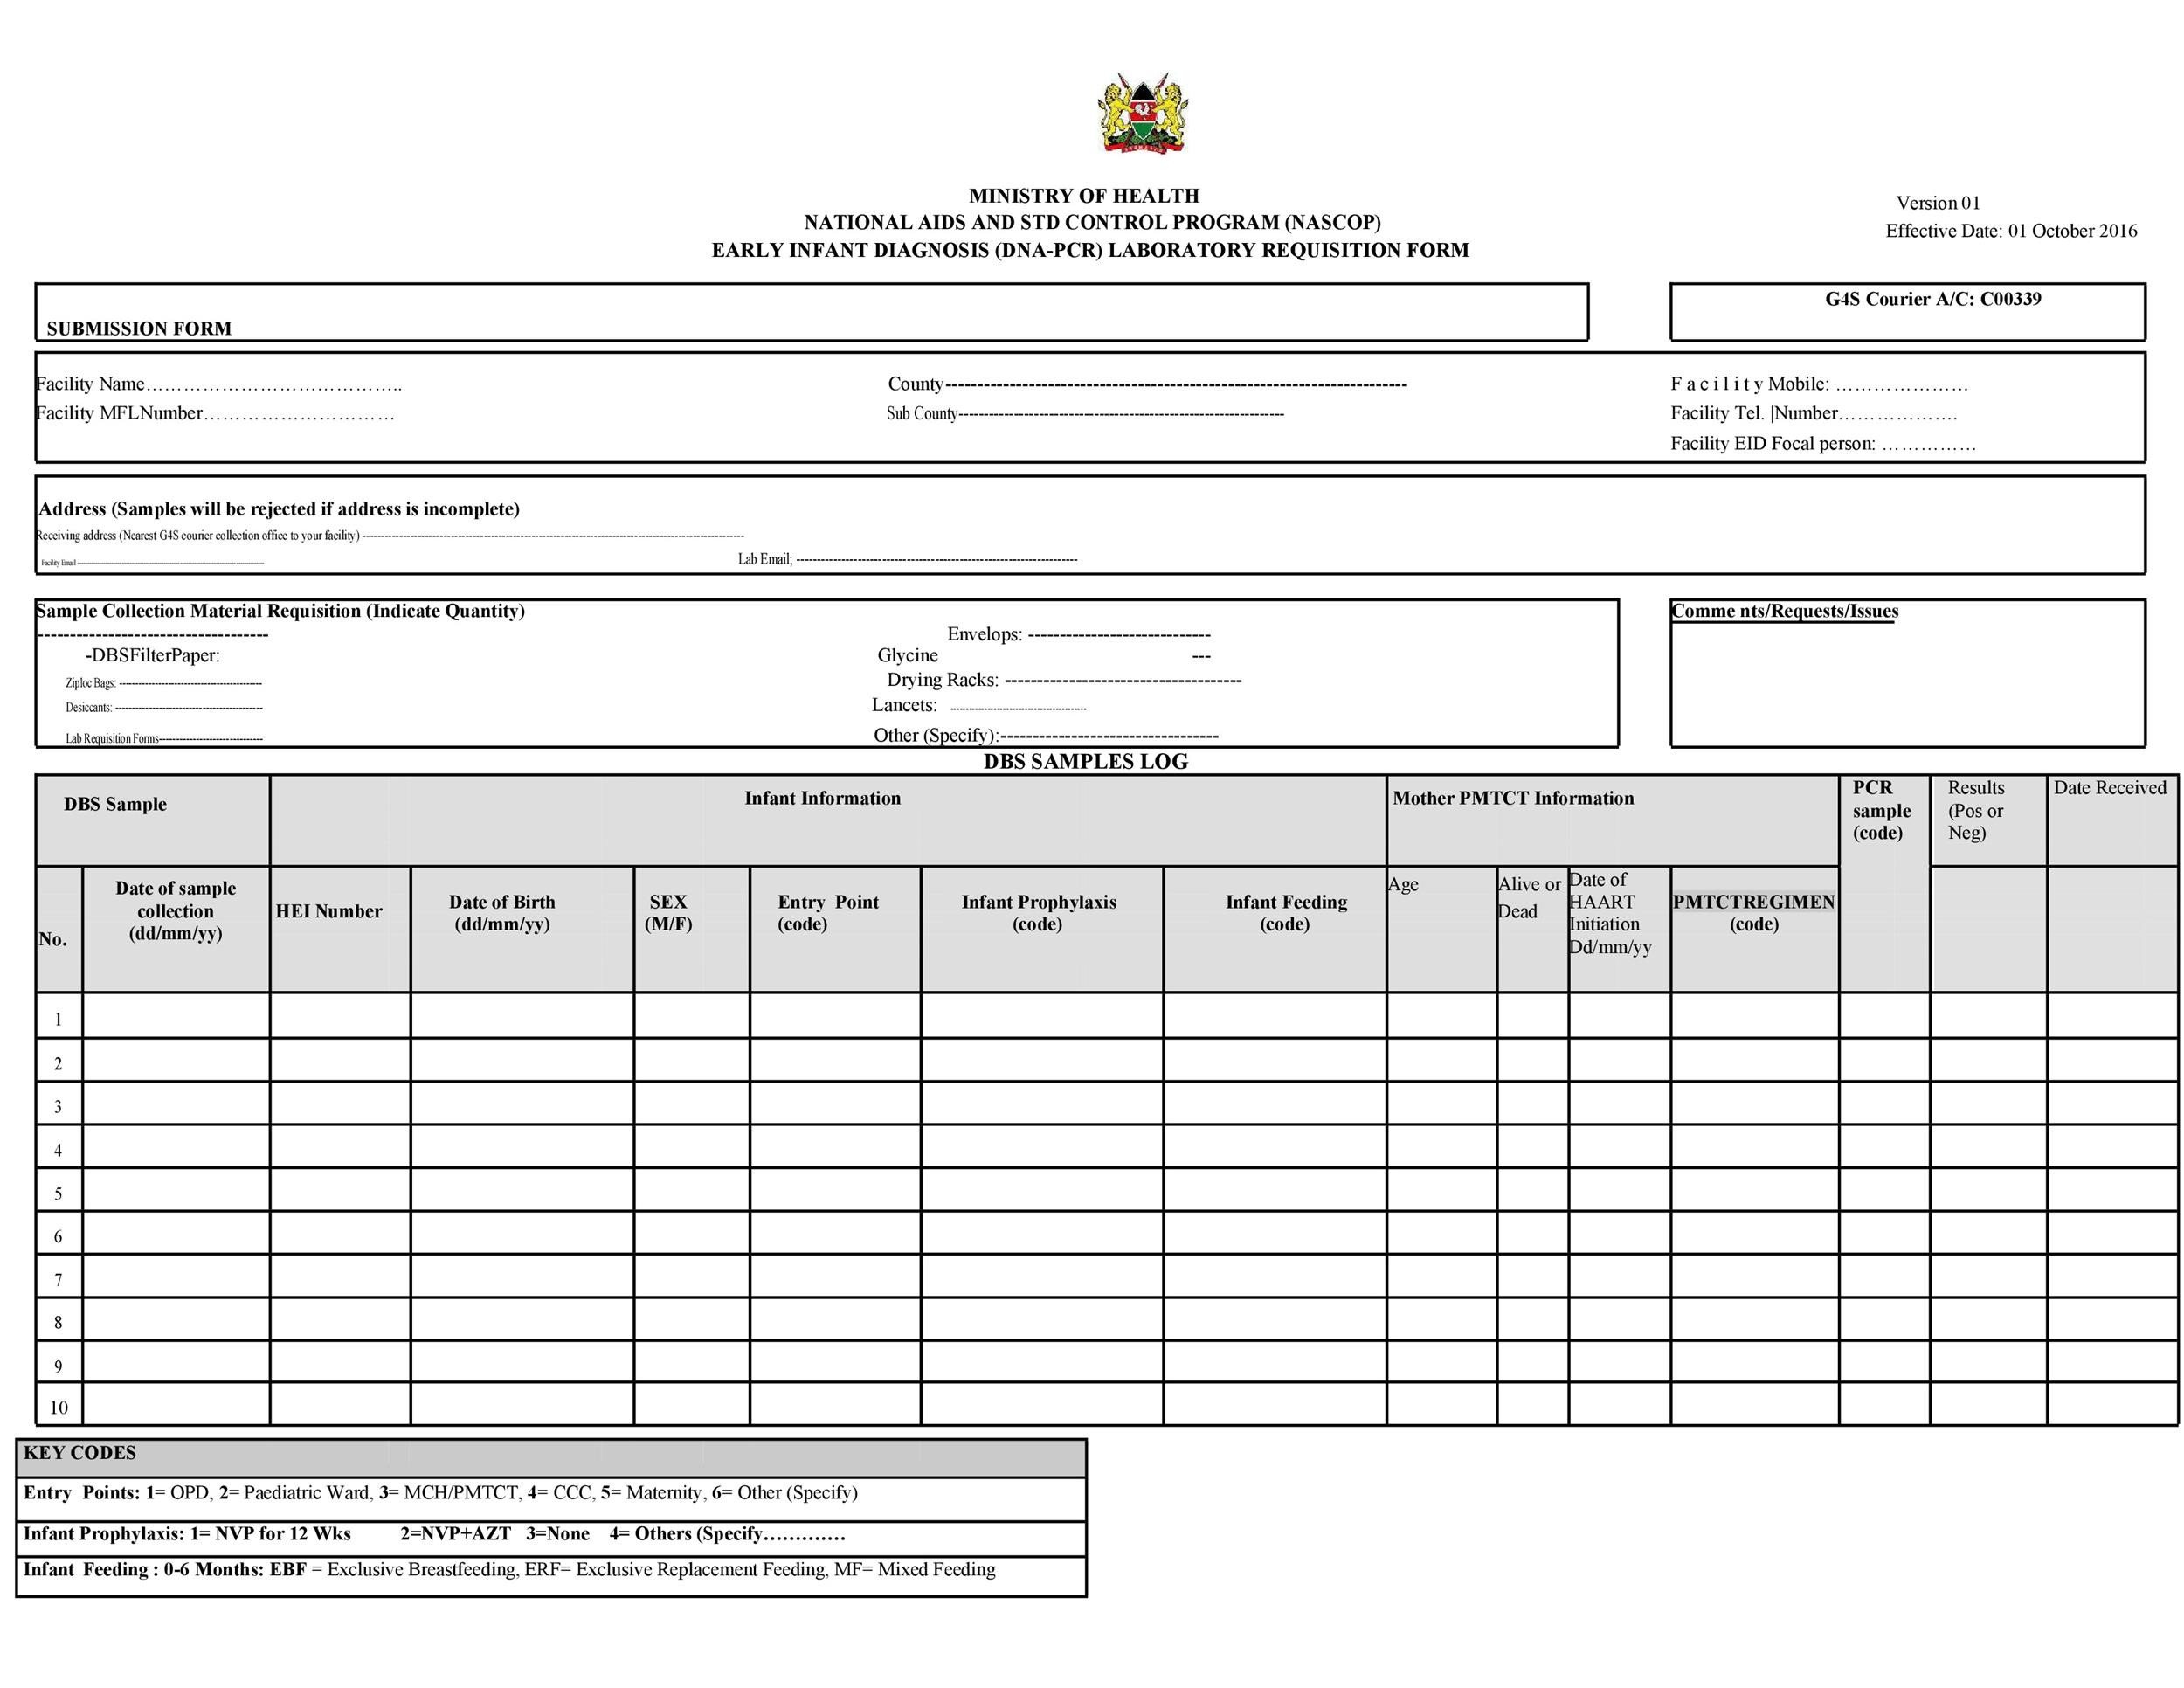 Free requisition form 46